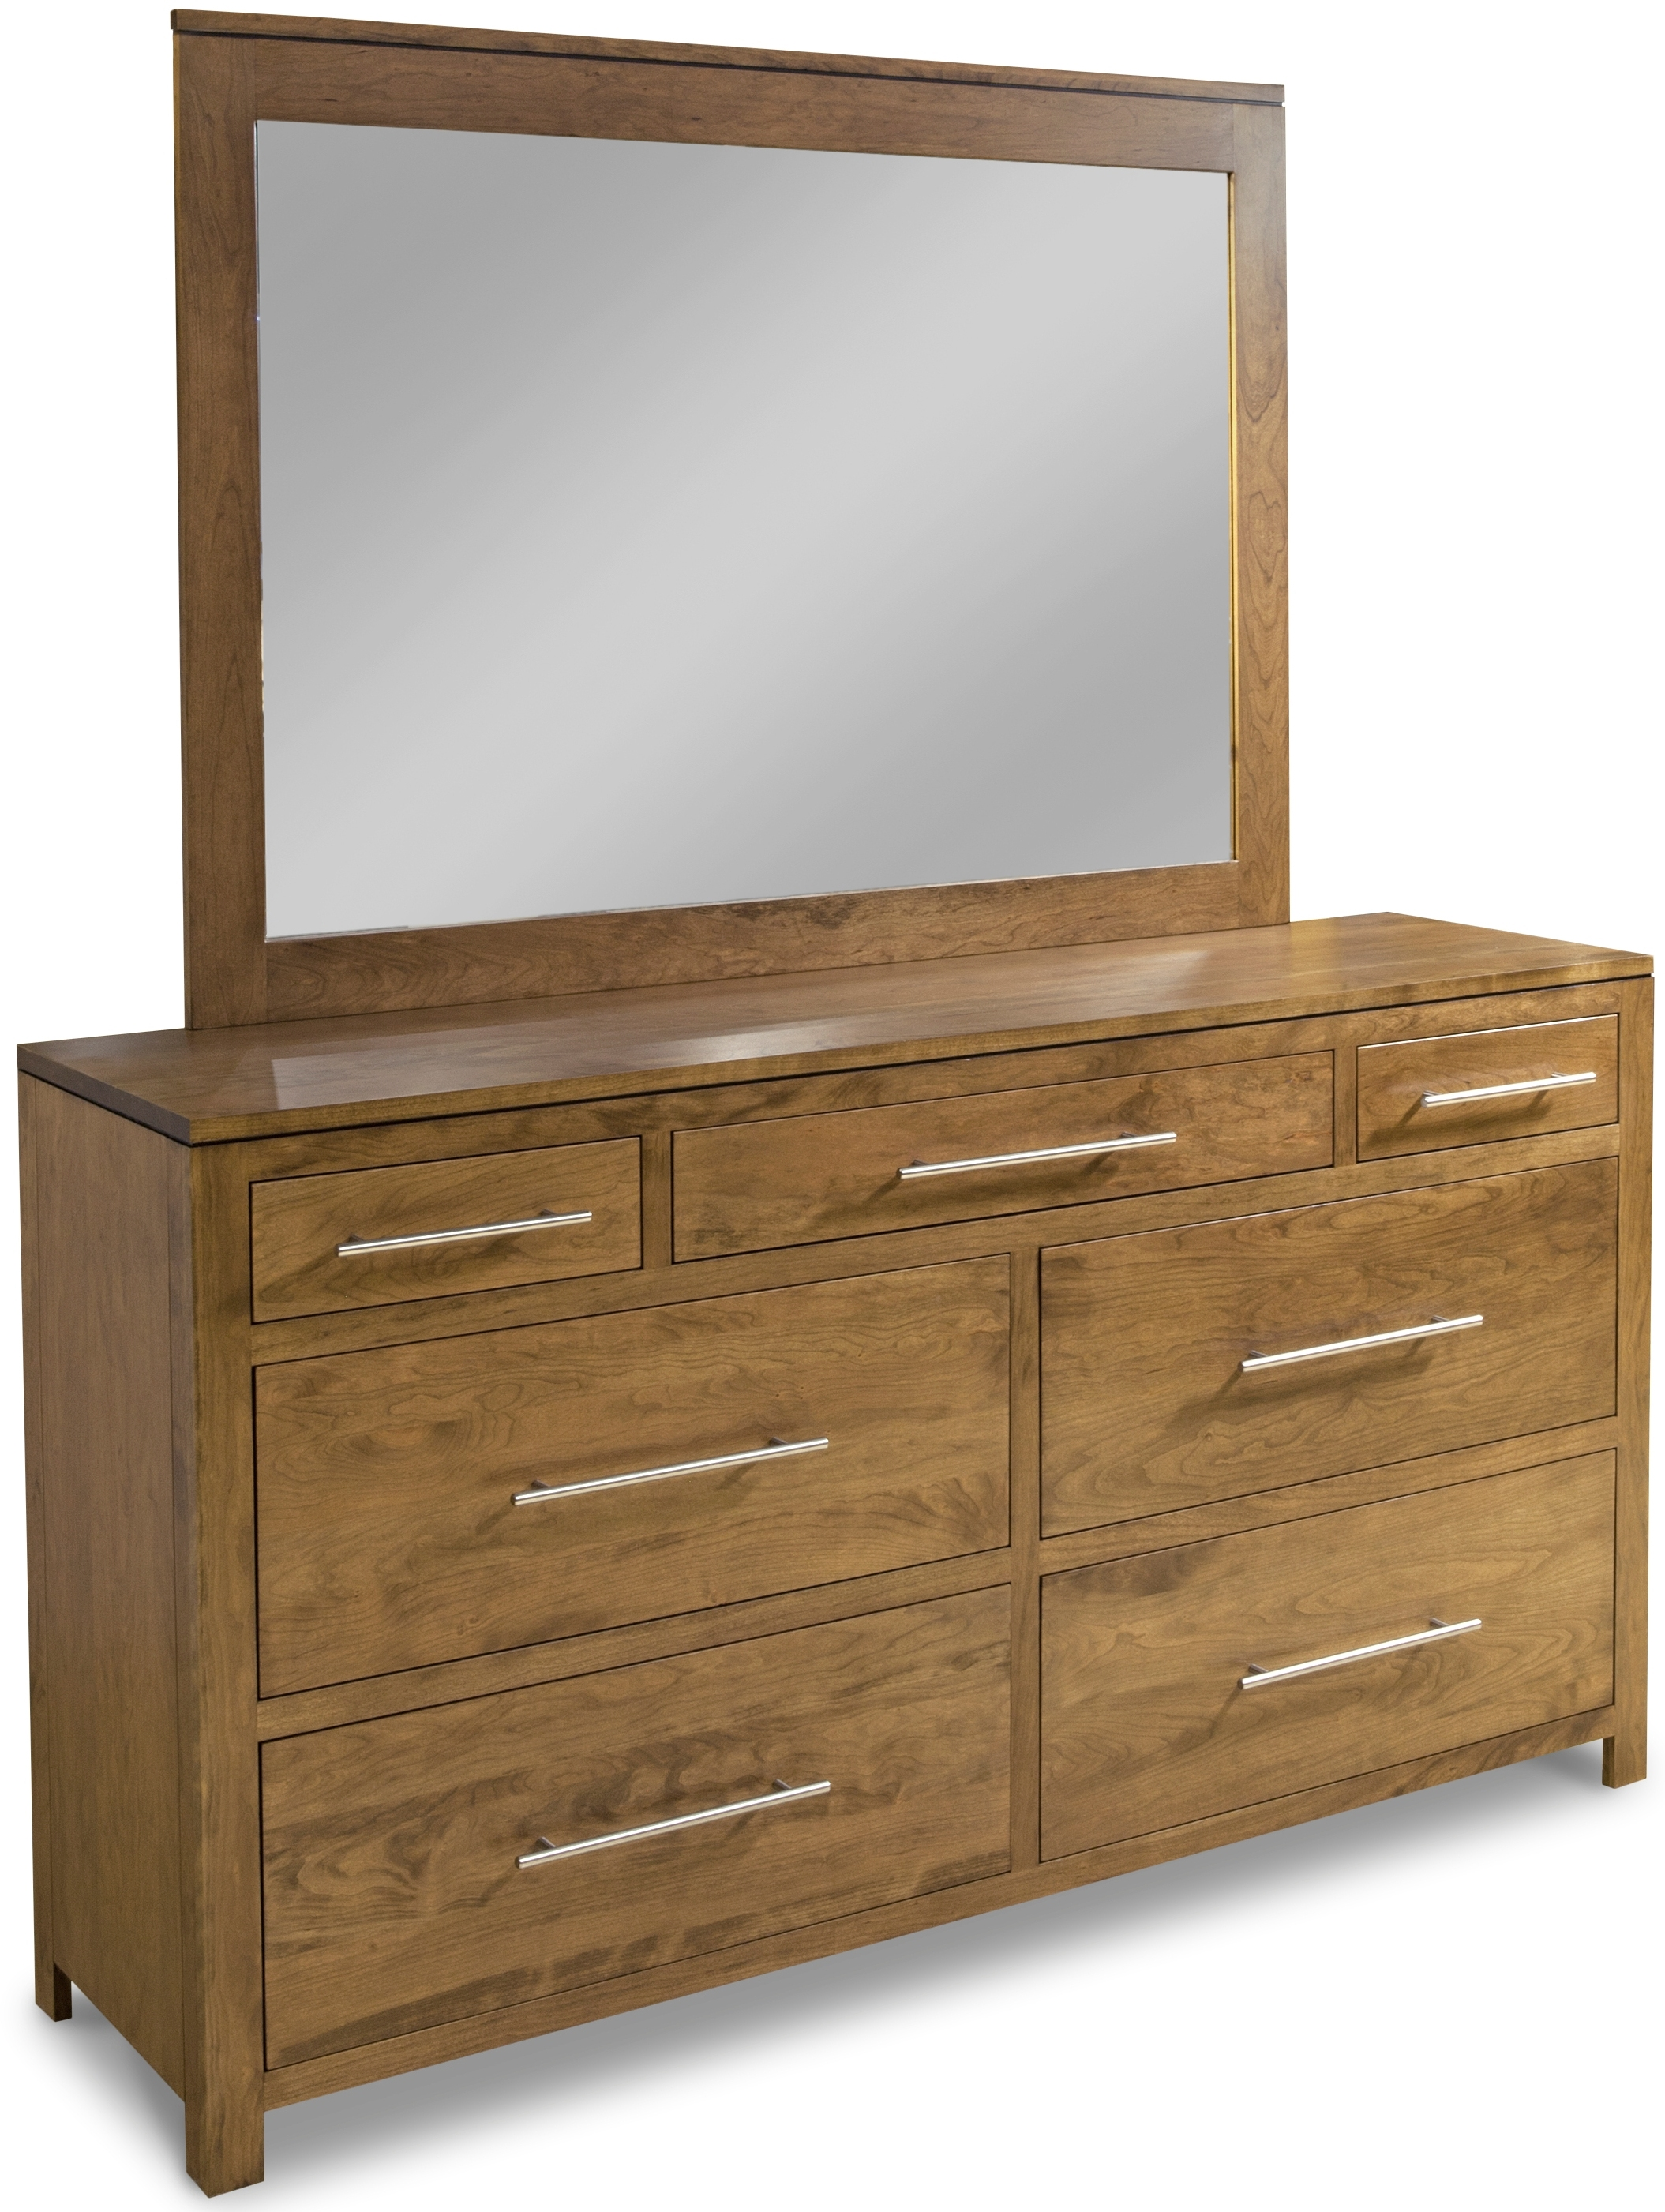 Modern 7 Drawer Double Dresser With Tall Wide Mirror By Daniel S Amish Collection 35 3657 39 3621 Willis Furniture Mattress